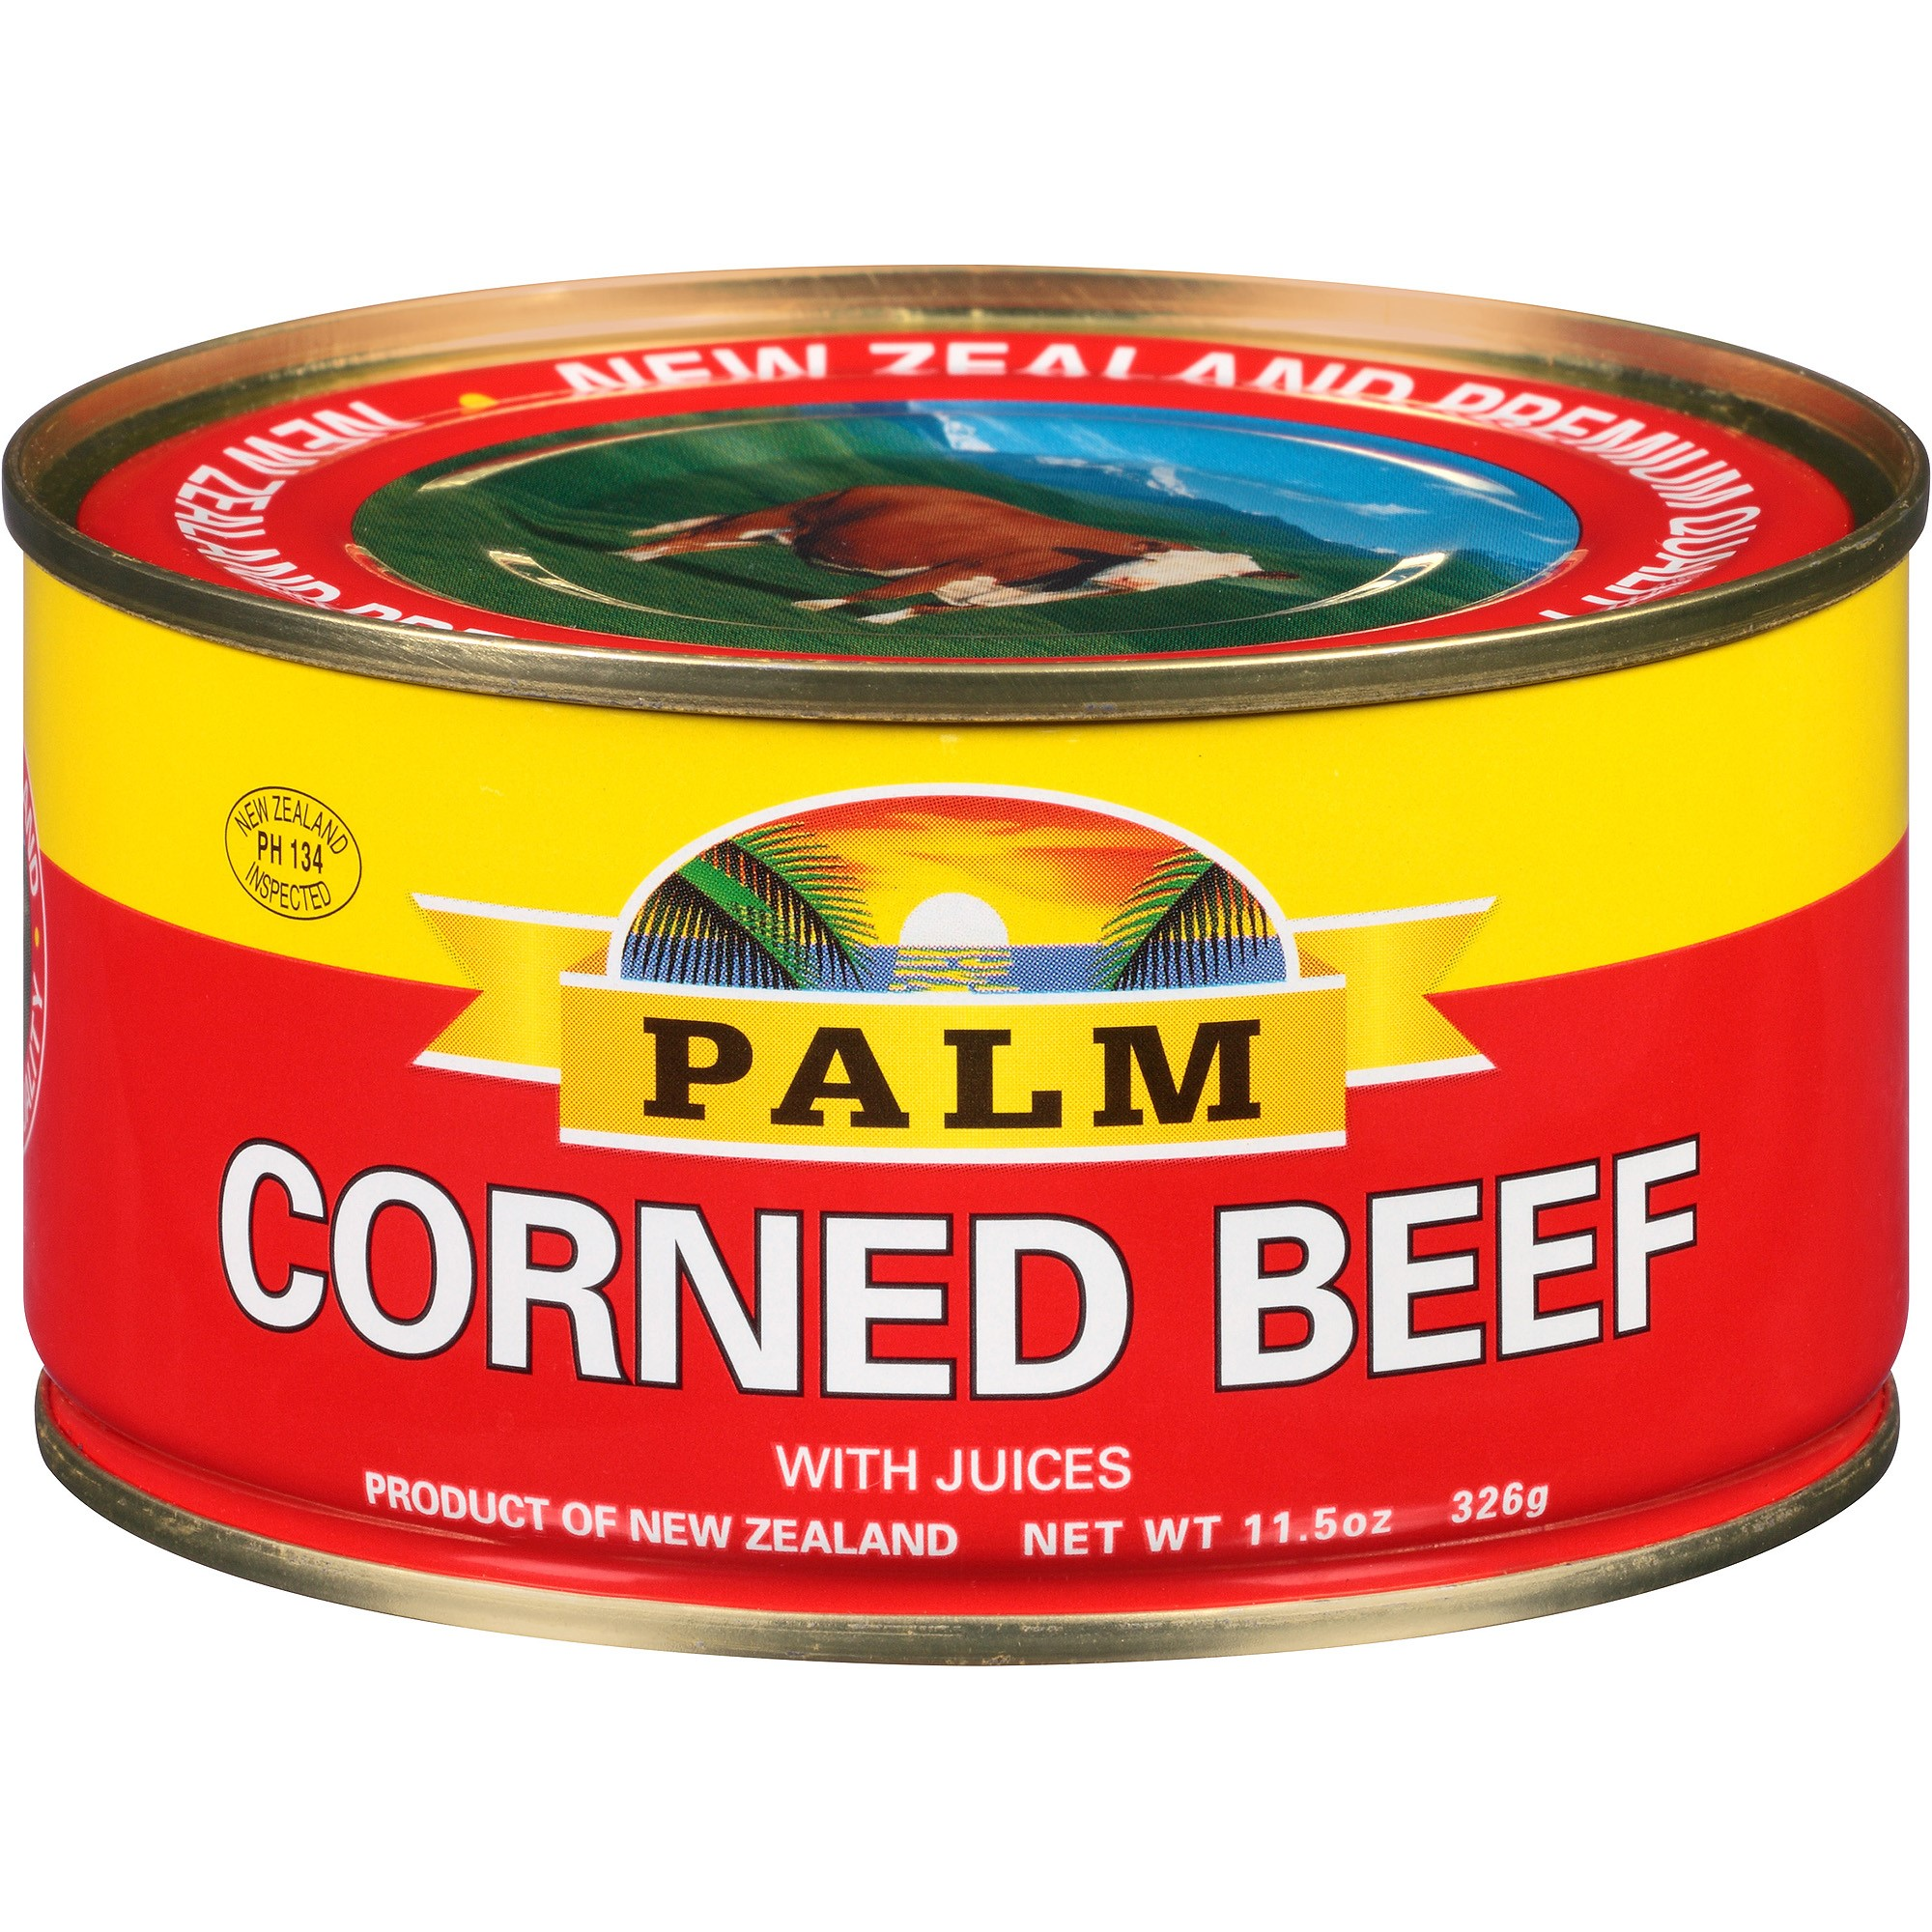 Palm Corned Beef with Juices, 11.5 oz